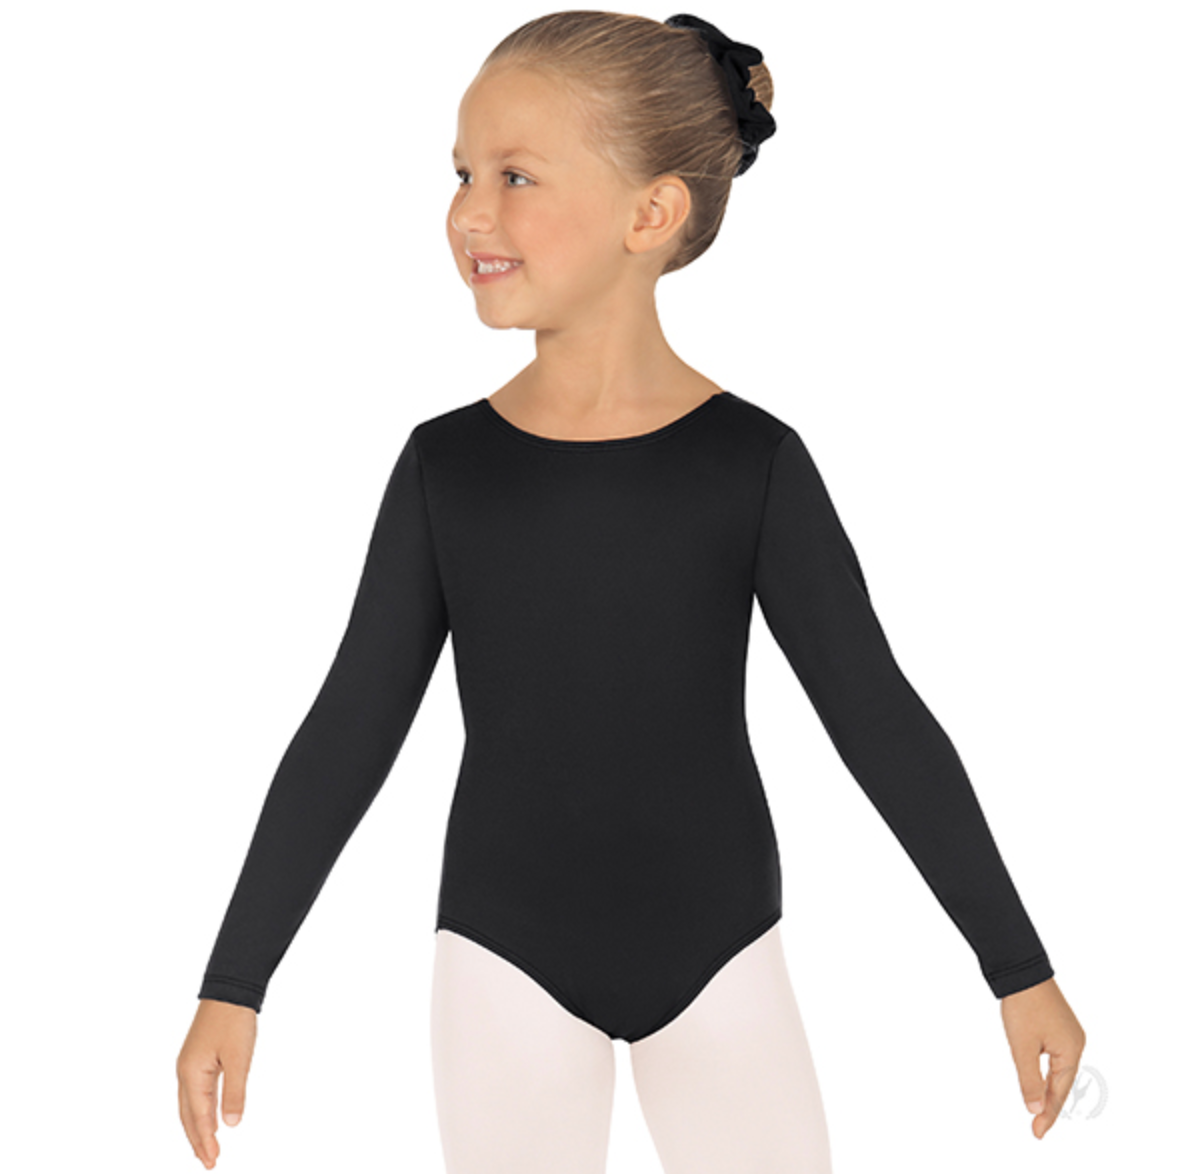 Eurotard Long Sleeve Leotard - 44265c